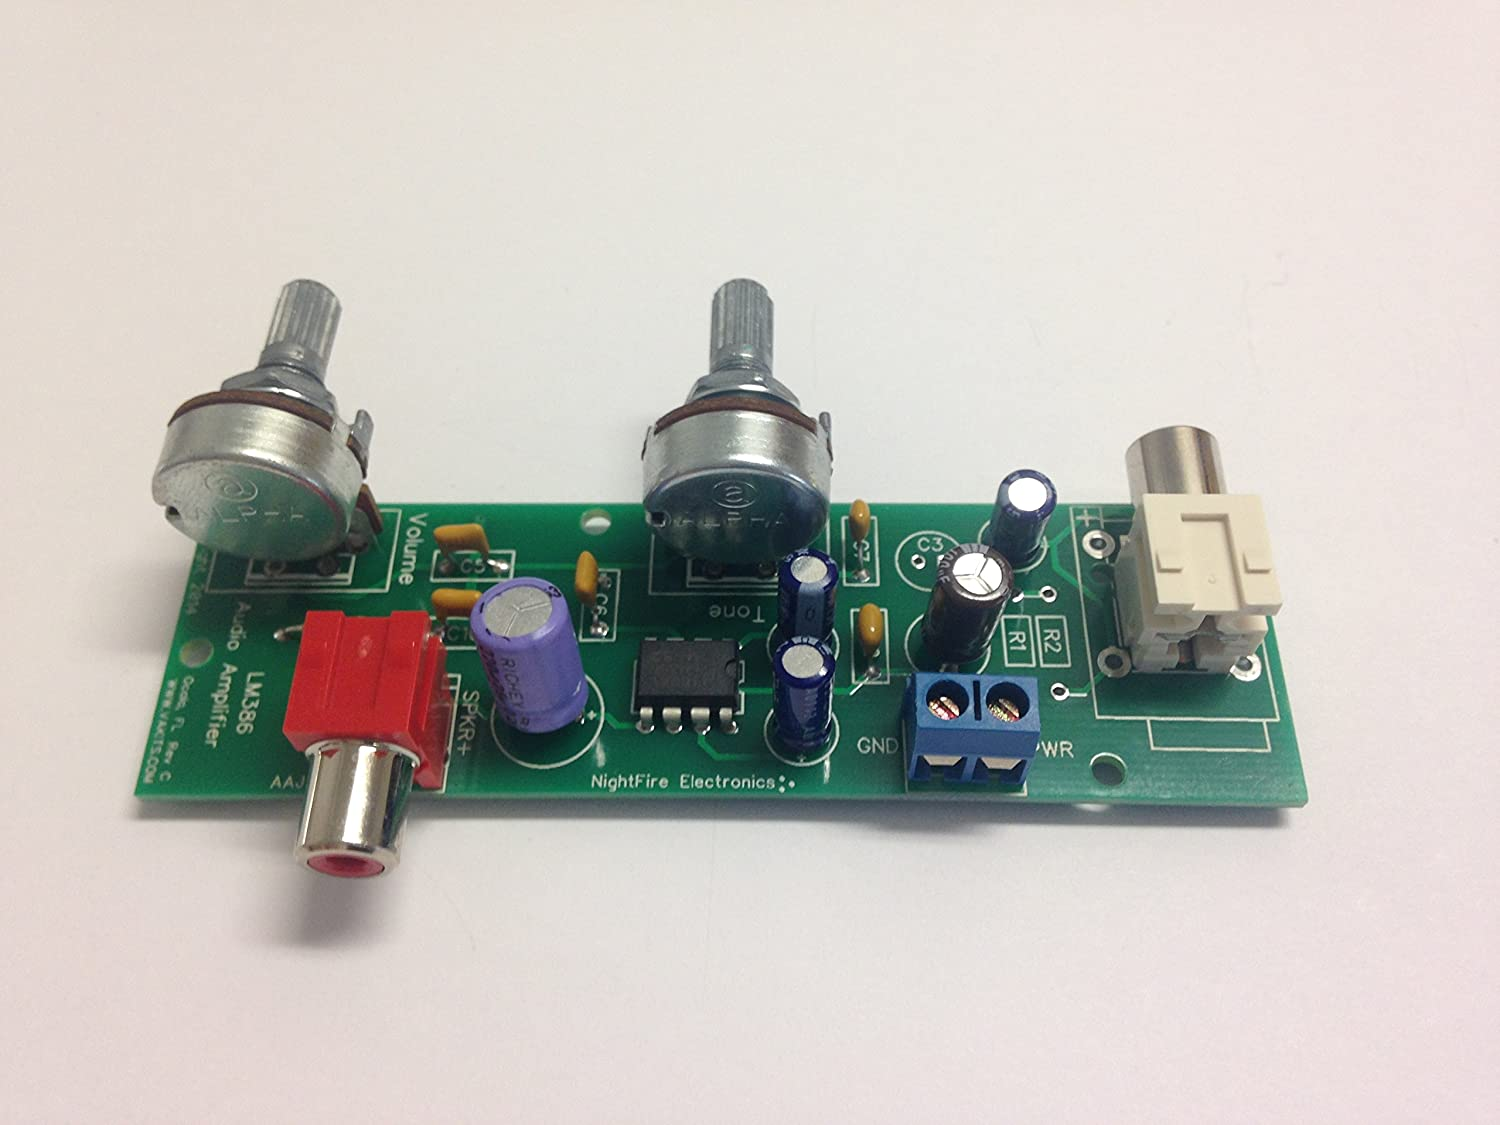 Audio Amplifier Kit With Tone Control Lm386 5328 Amp Kits 2 Channel Subwoofer Circuit Board For Diy Electronics